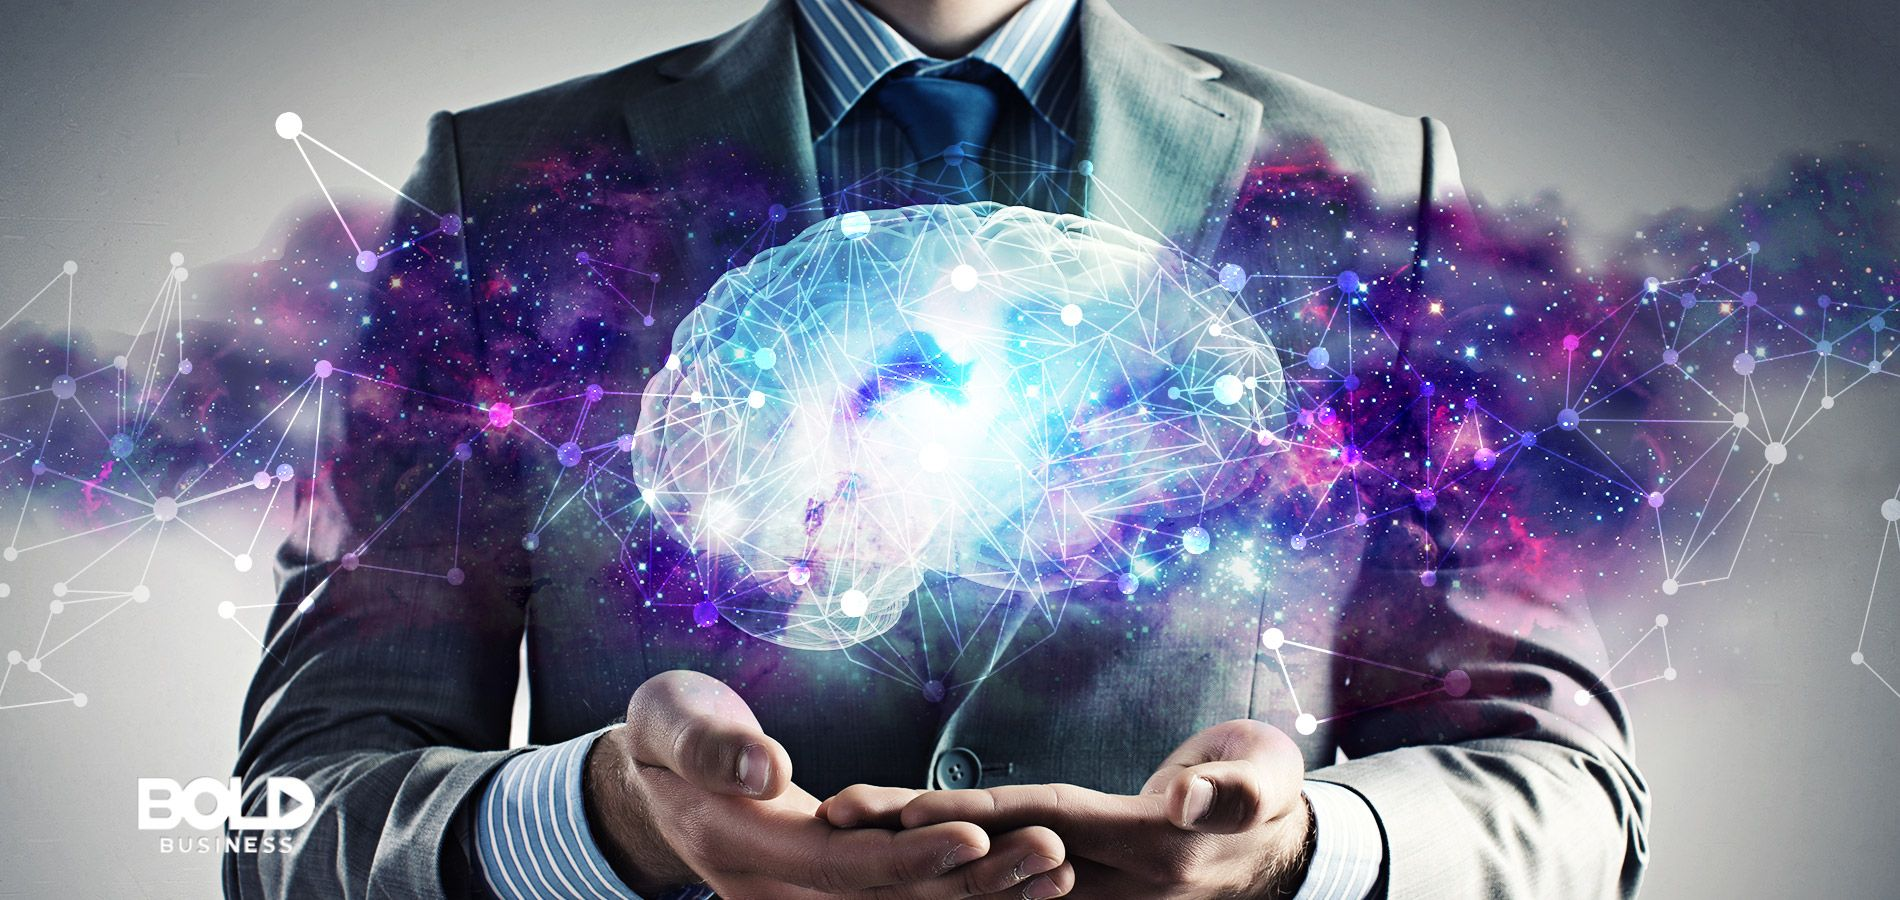 Evolving Space of Neuromedicine and Neuroscience